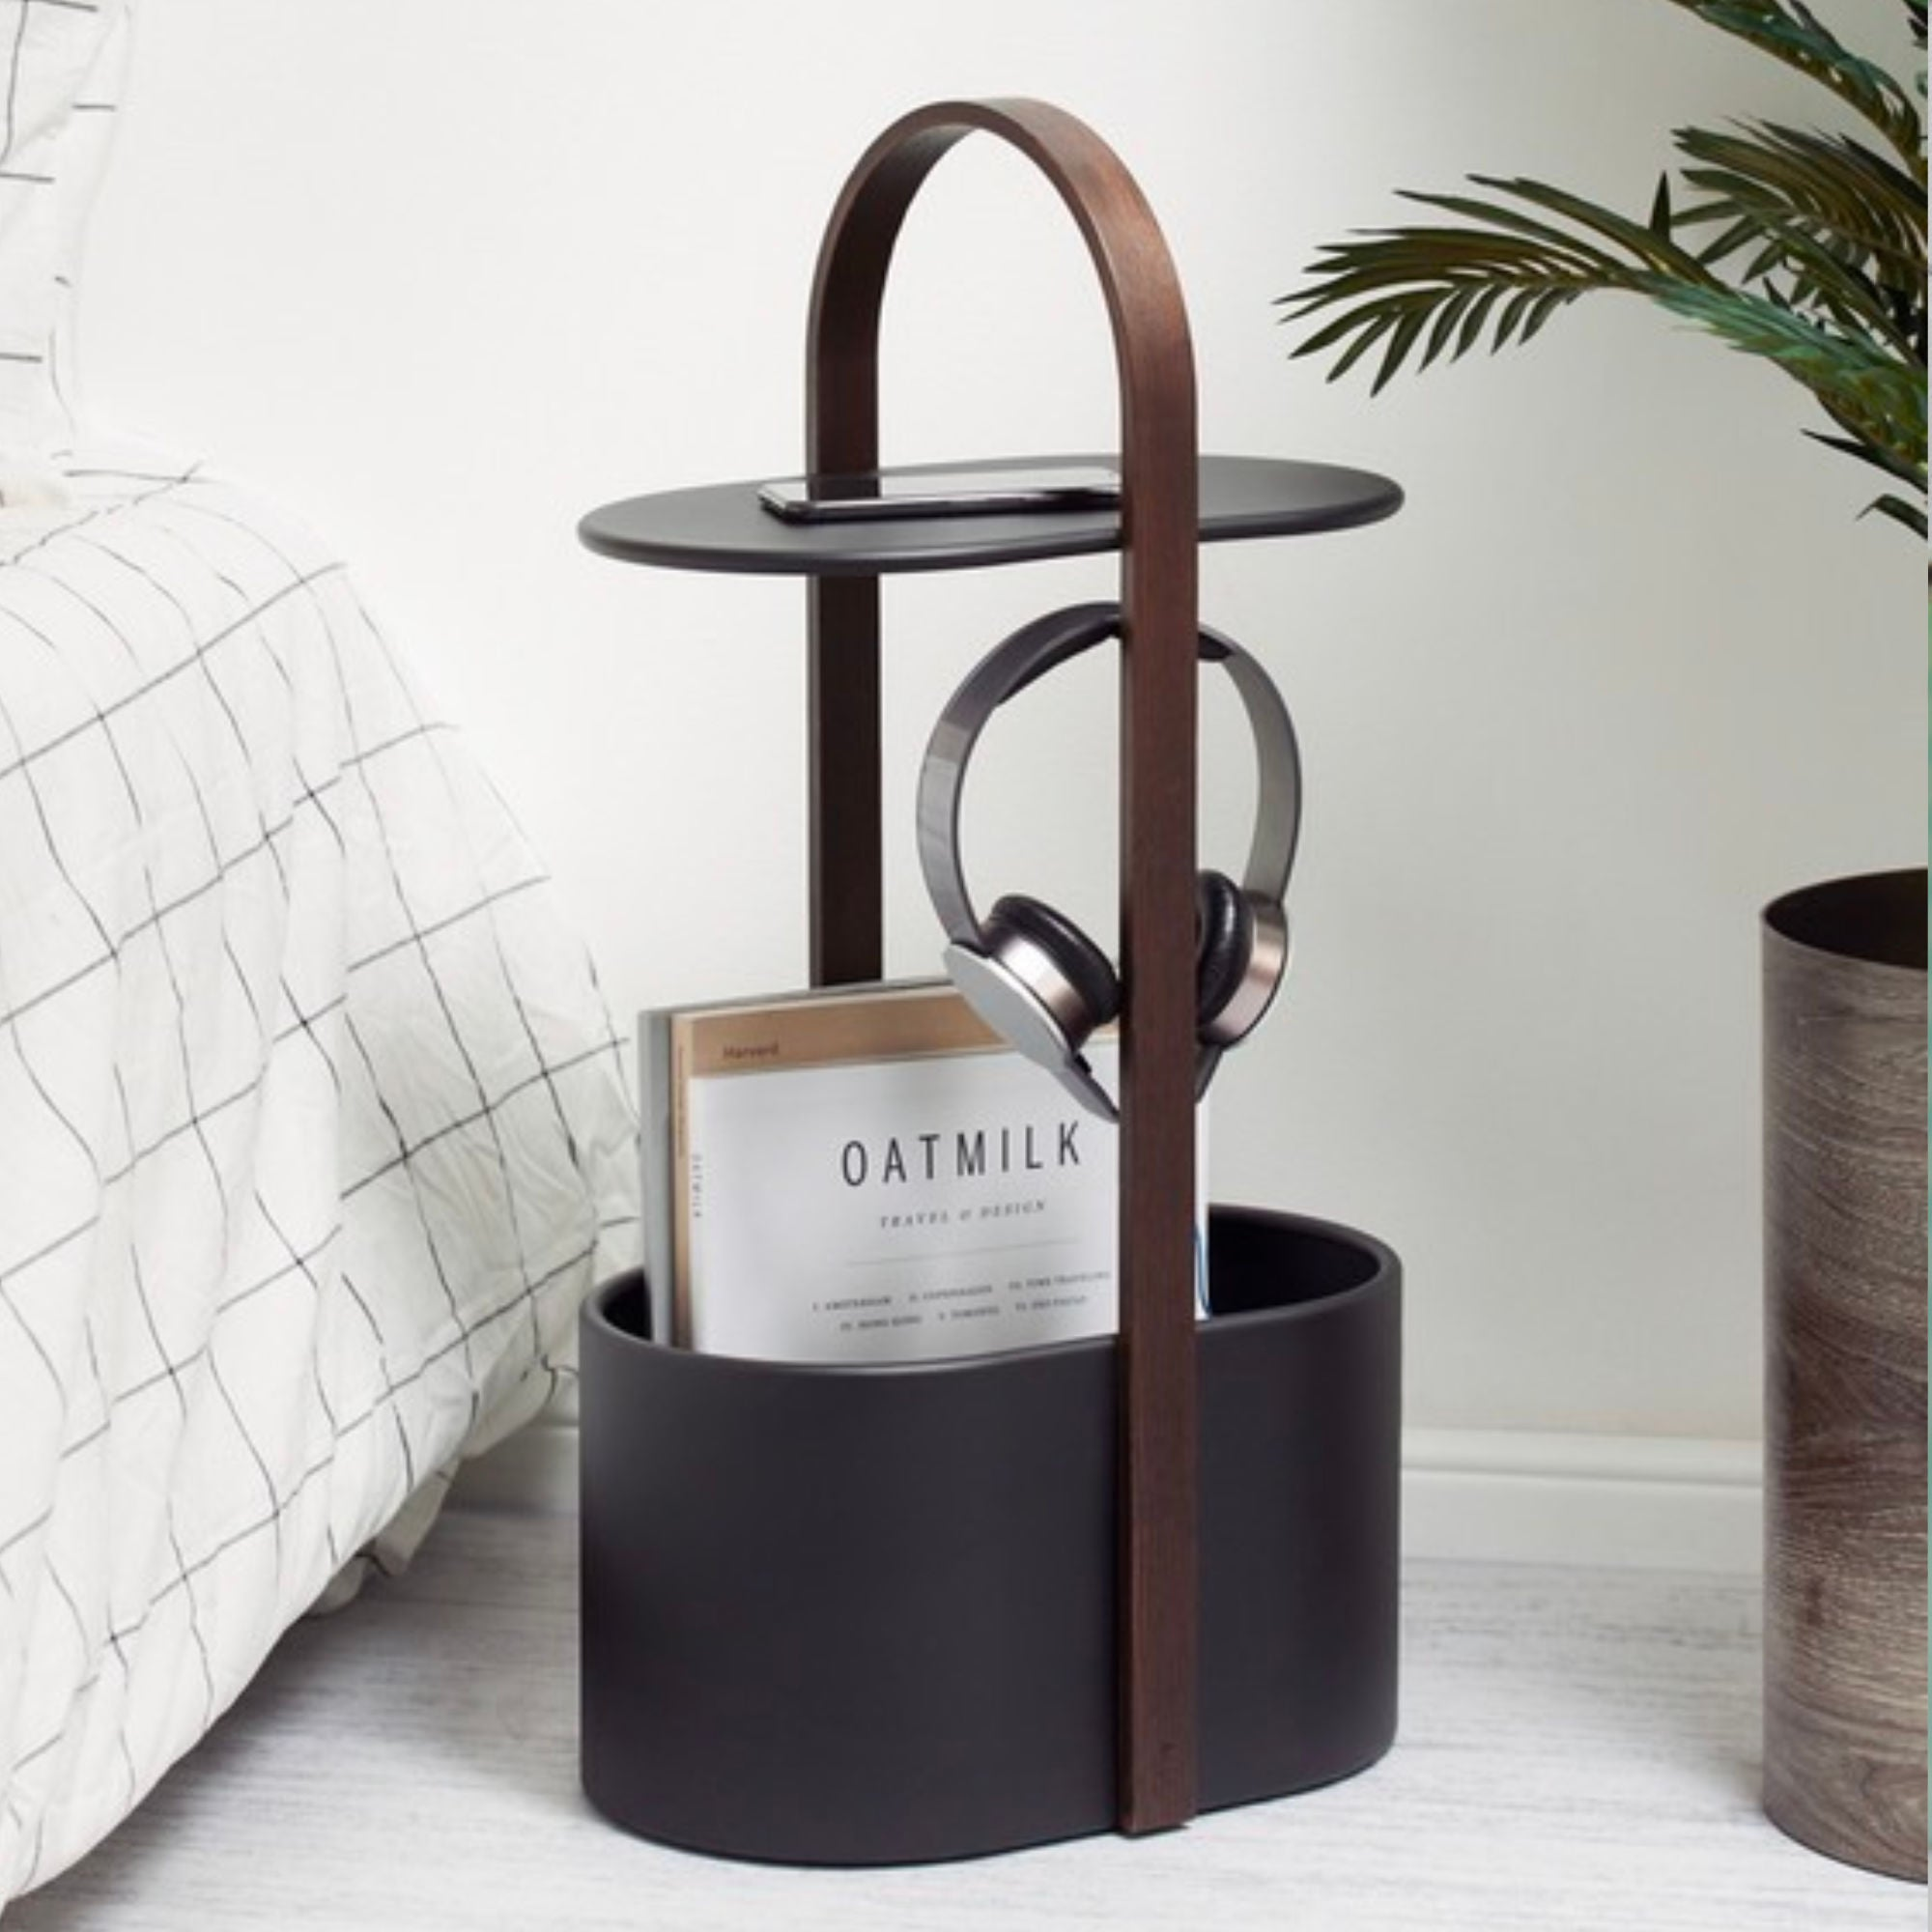 Umbra Hub side table with Storage and Cable Management